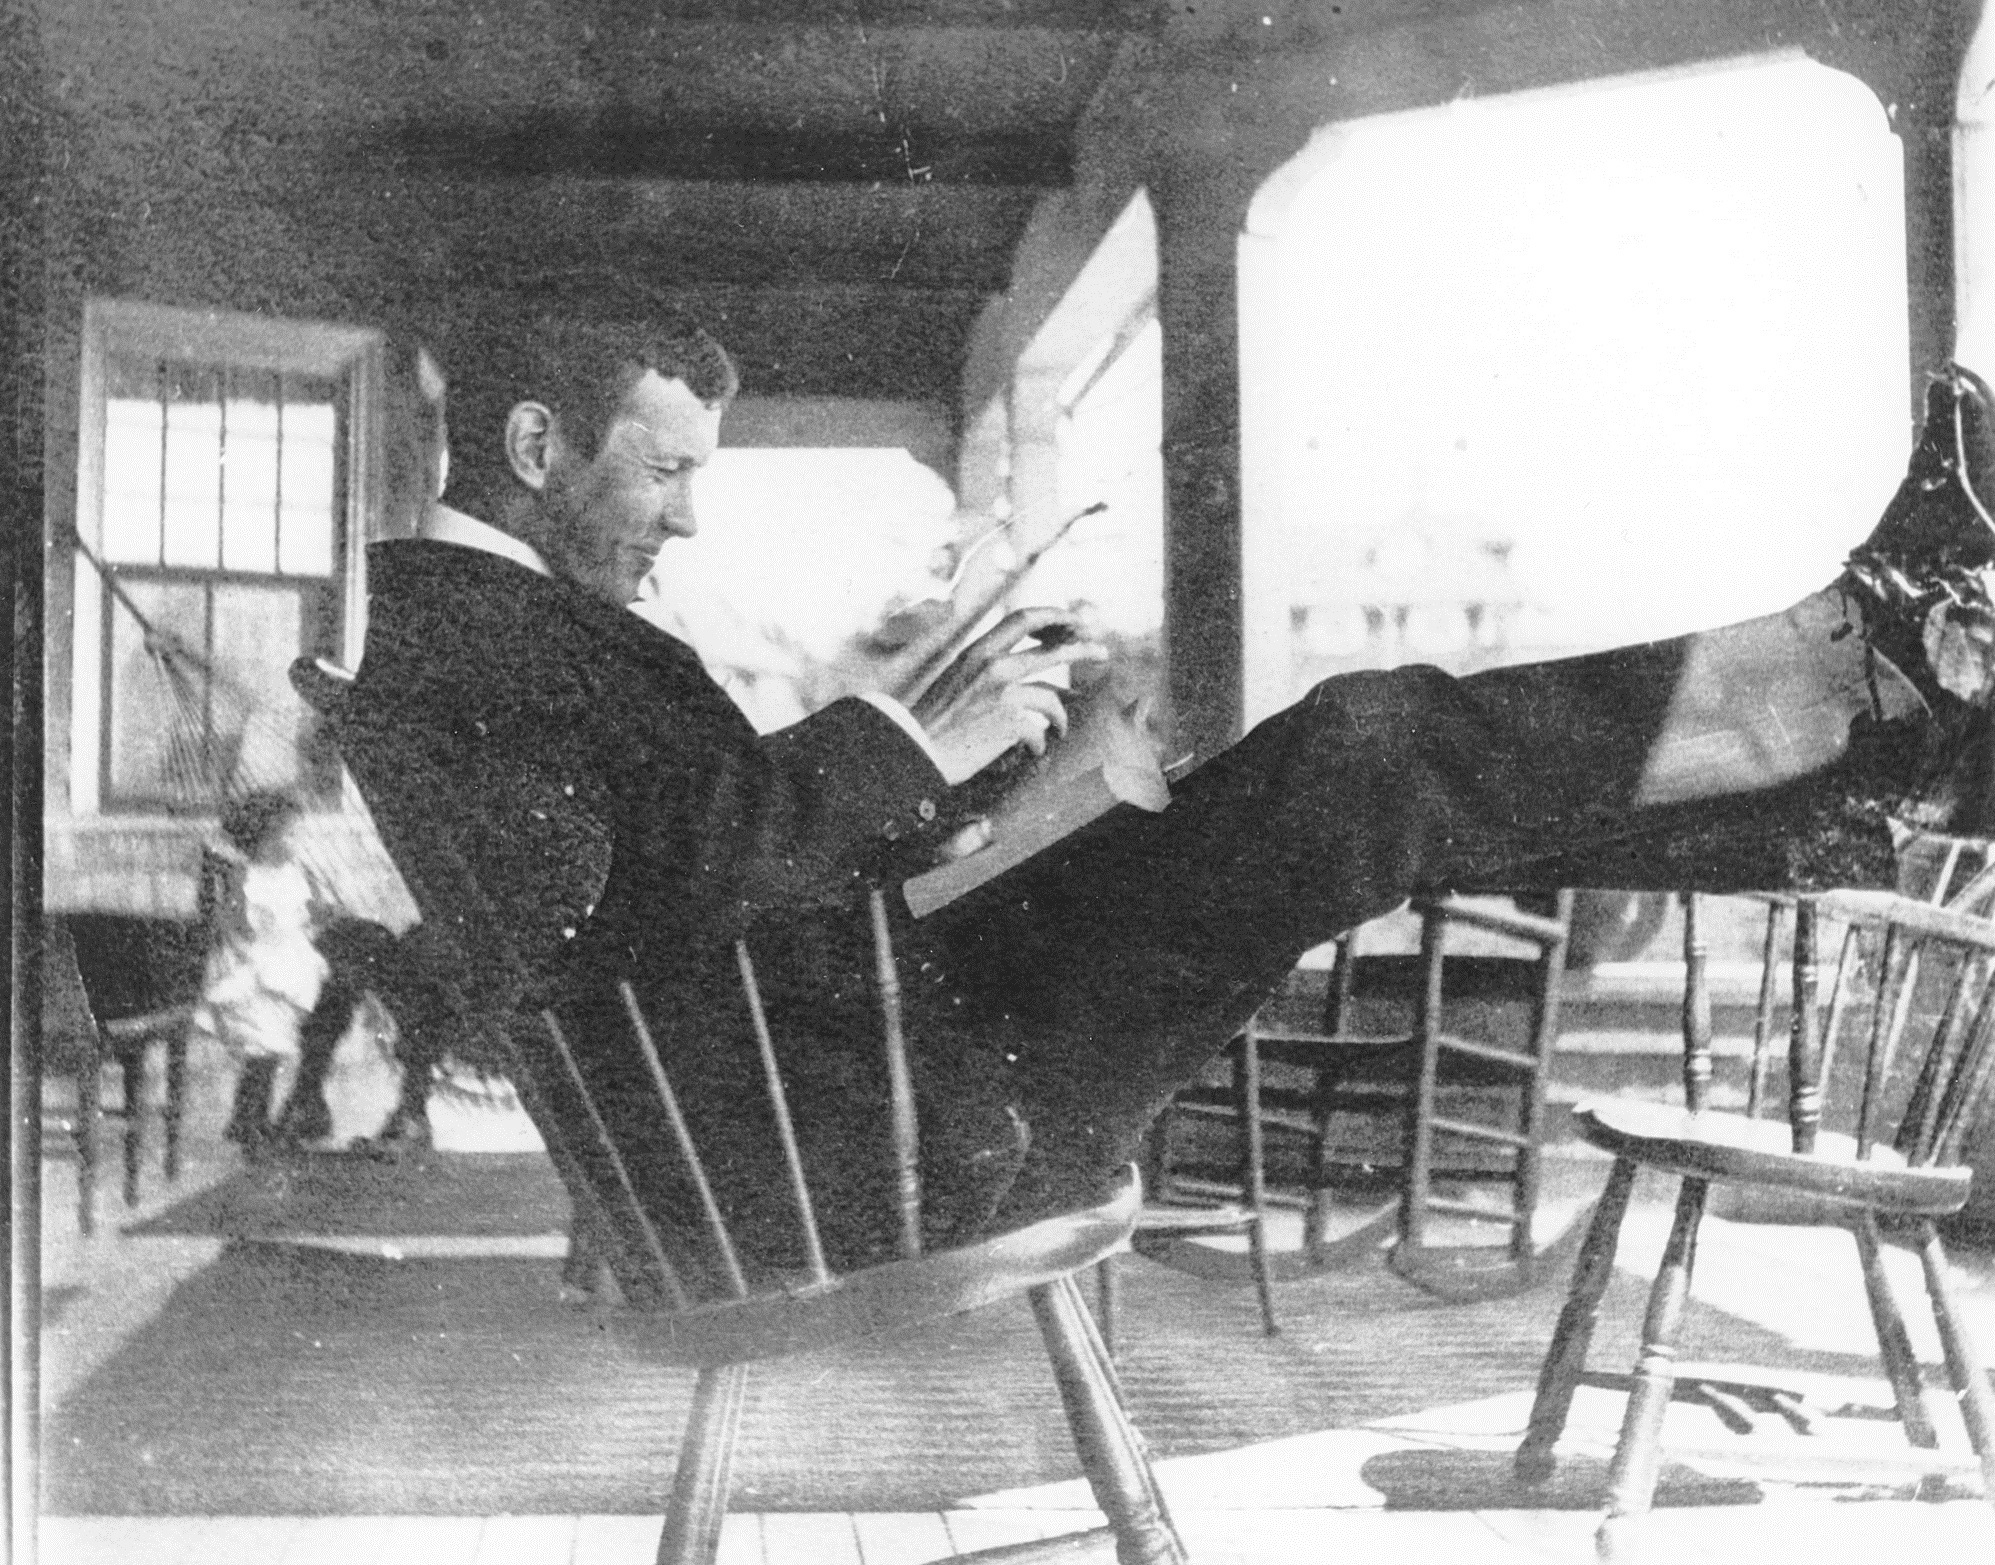 McCrae is shown relaxing outside a hospital in 1897. (Guelph Museums)